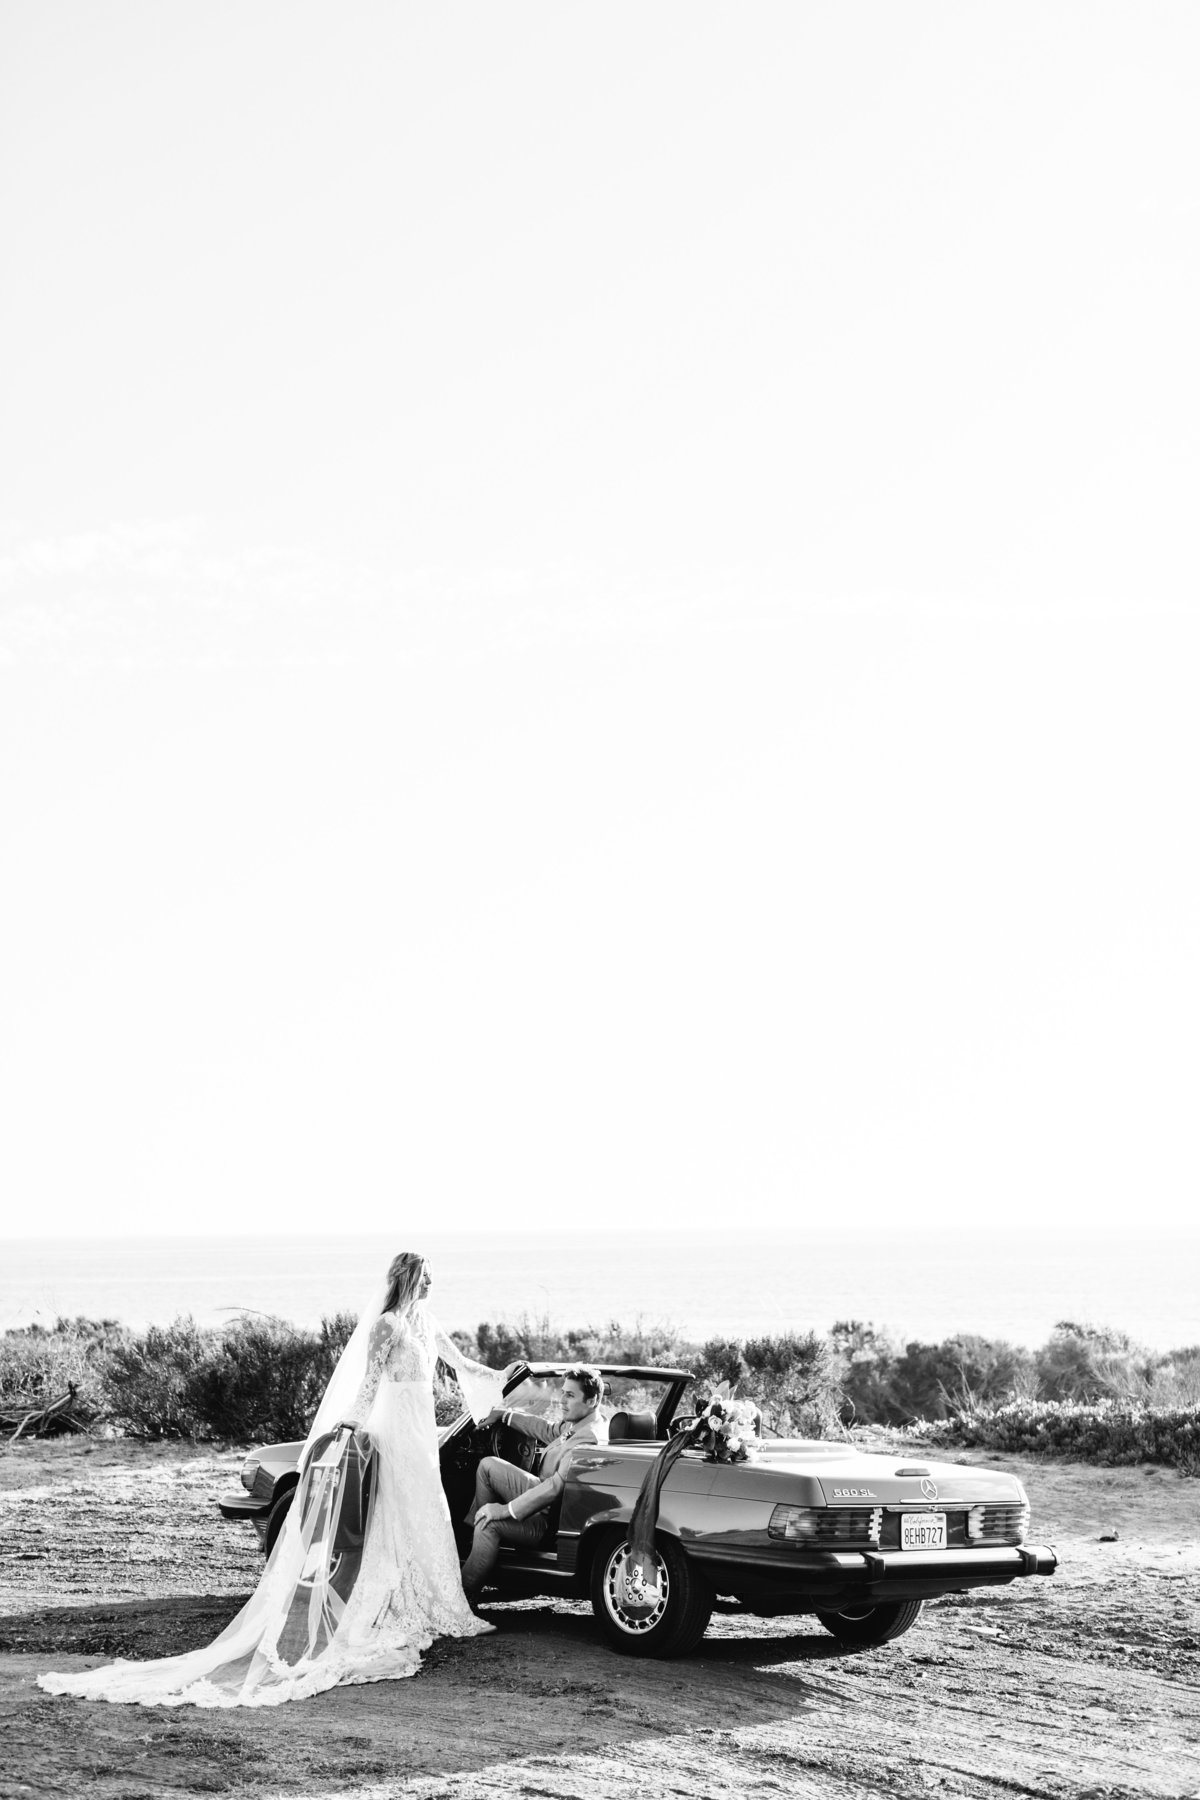 Best California Wedding Photographer-Jodee Debes Photography-86